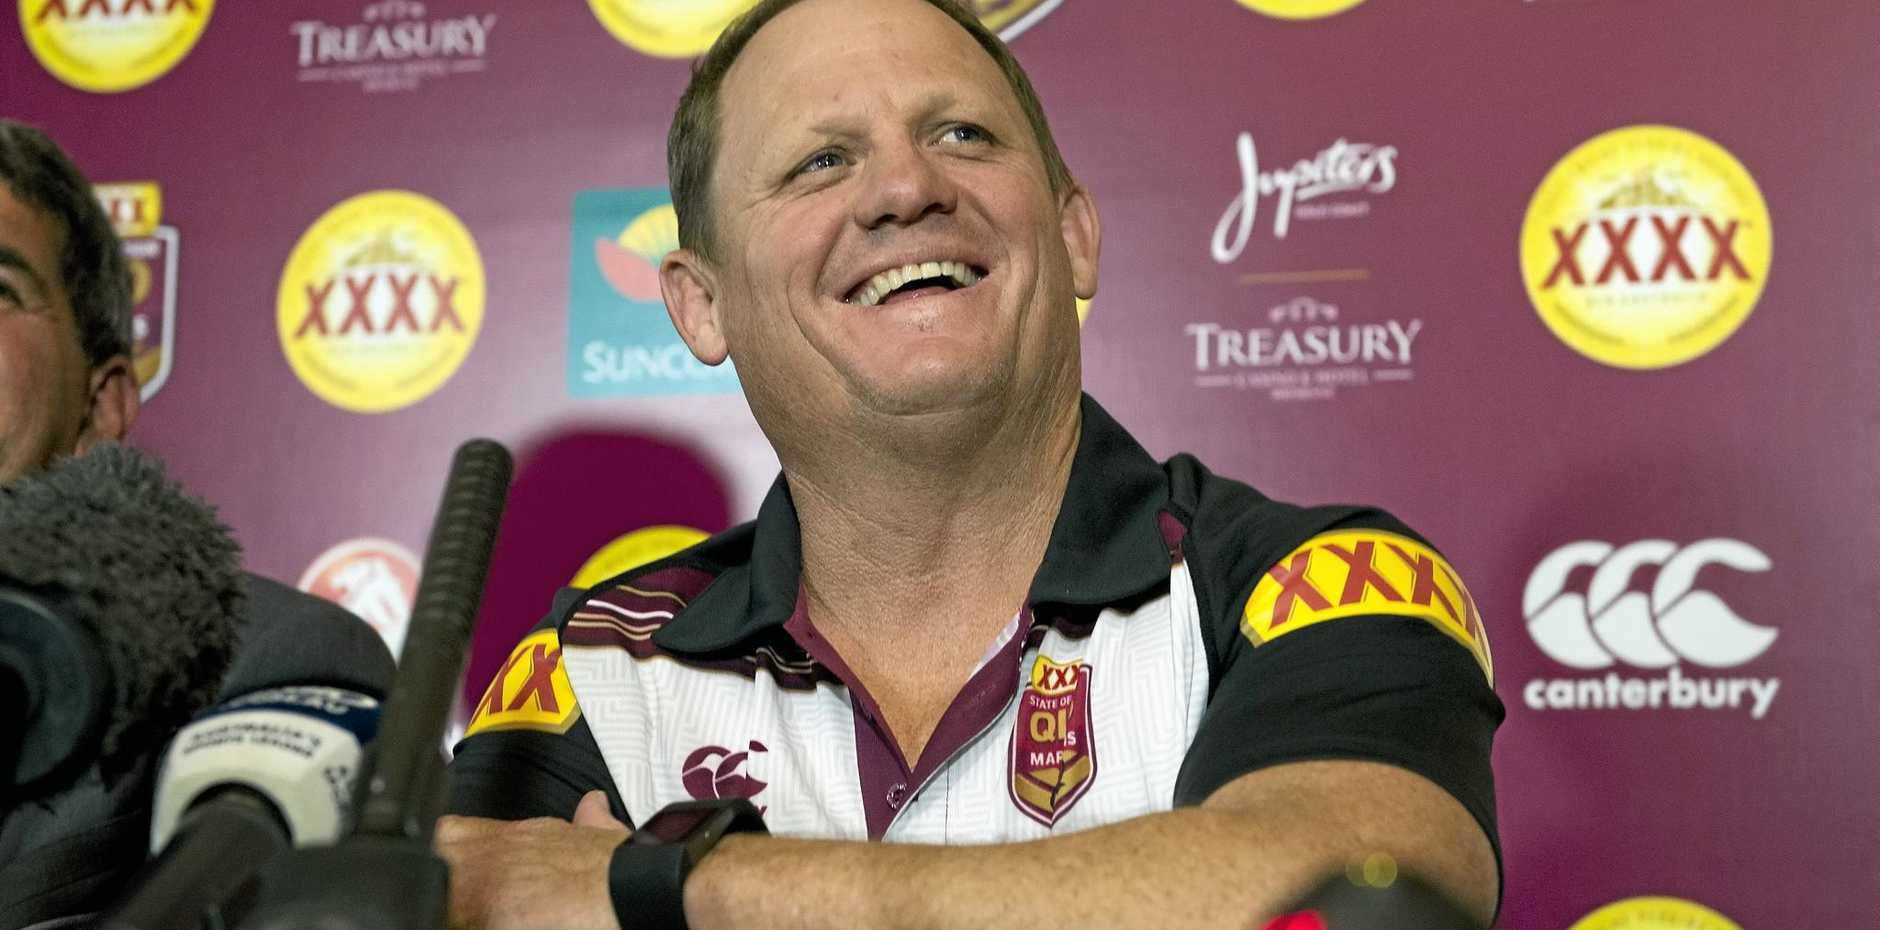 SECOND TEST: Queensland coach Kevin Walters is still smiling despite the heavy burden of taking over one of rugby league's hardest jobs from Mal Meninga this year.